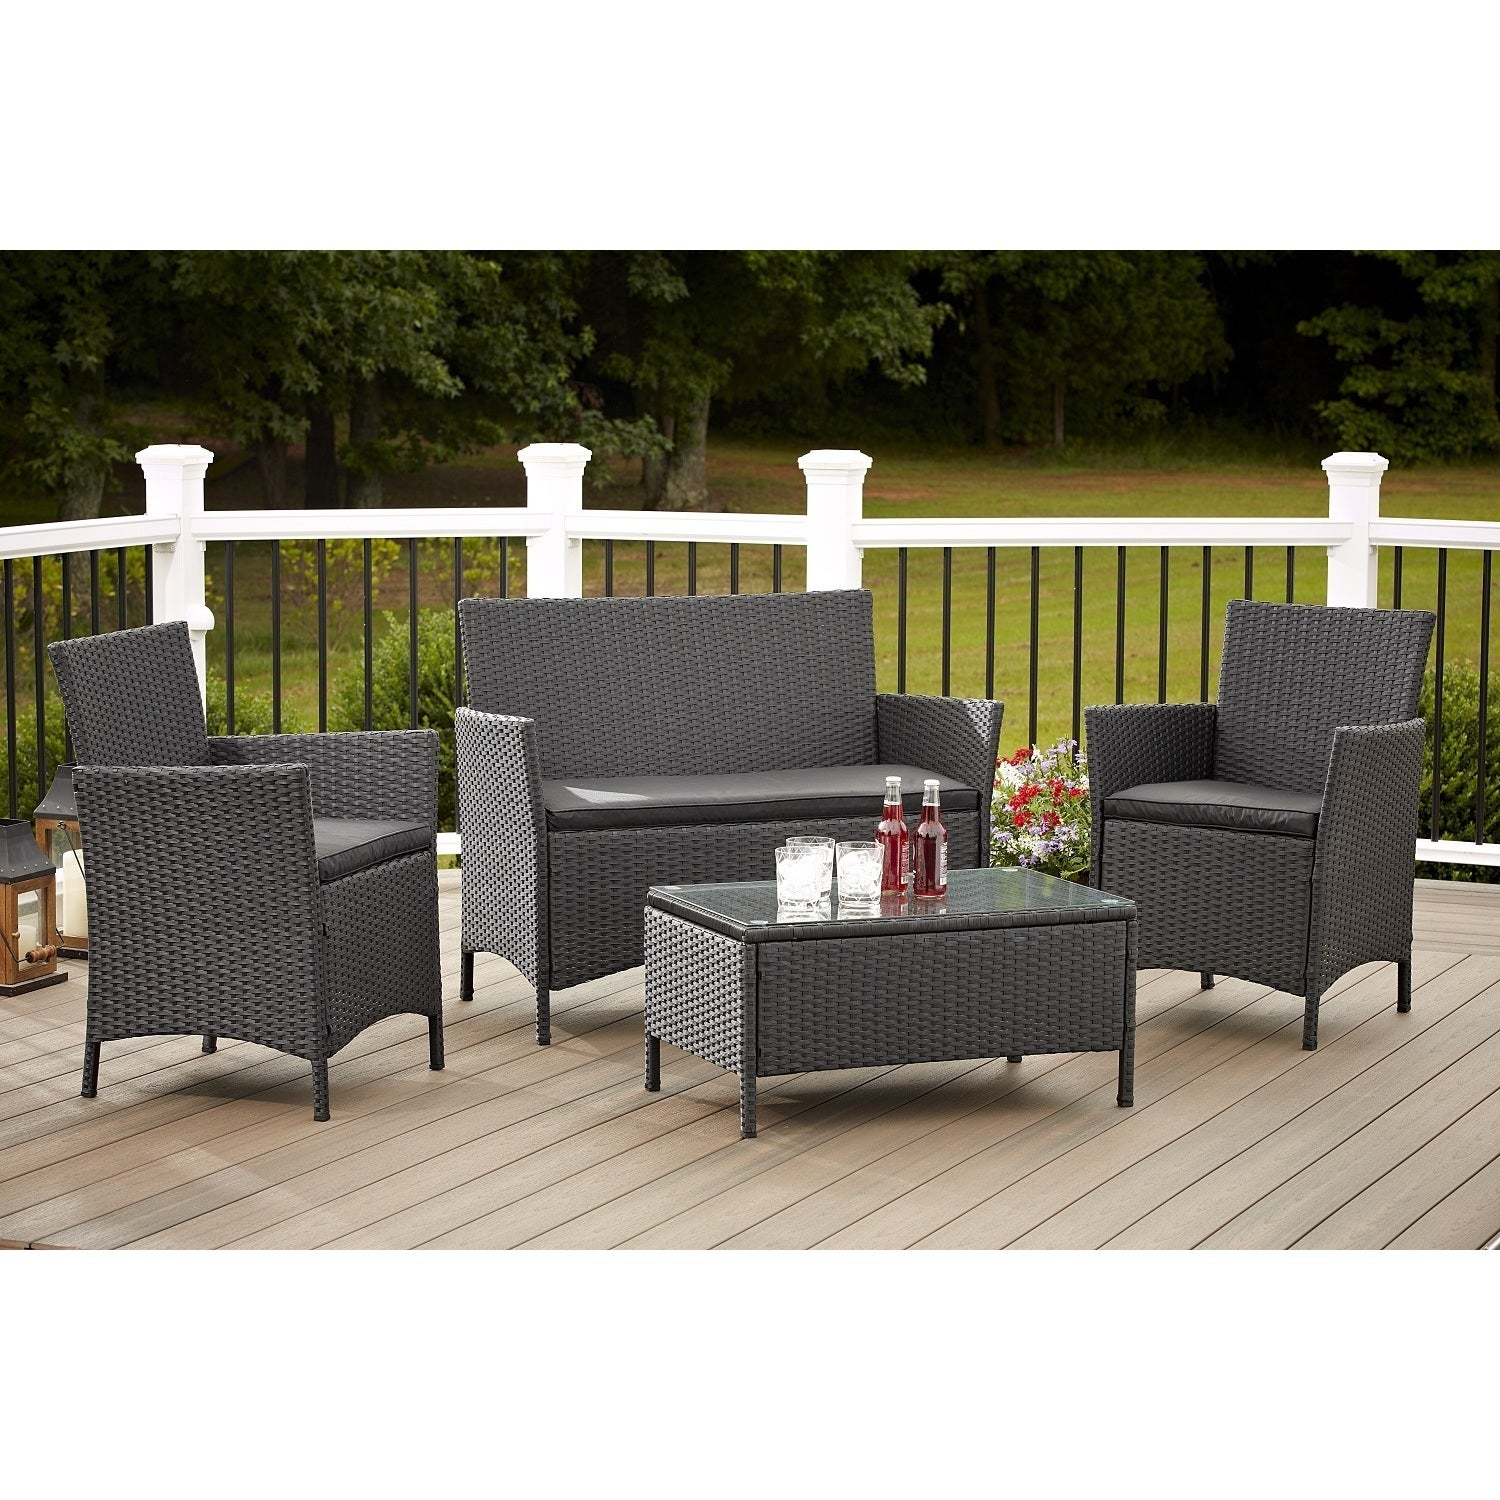 Avenue Greene 4 Piece Resin Wicker Deep Seating Patio Conversation